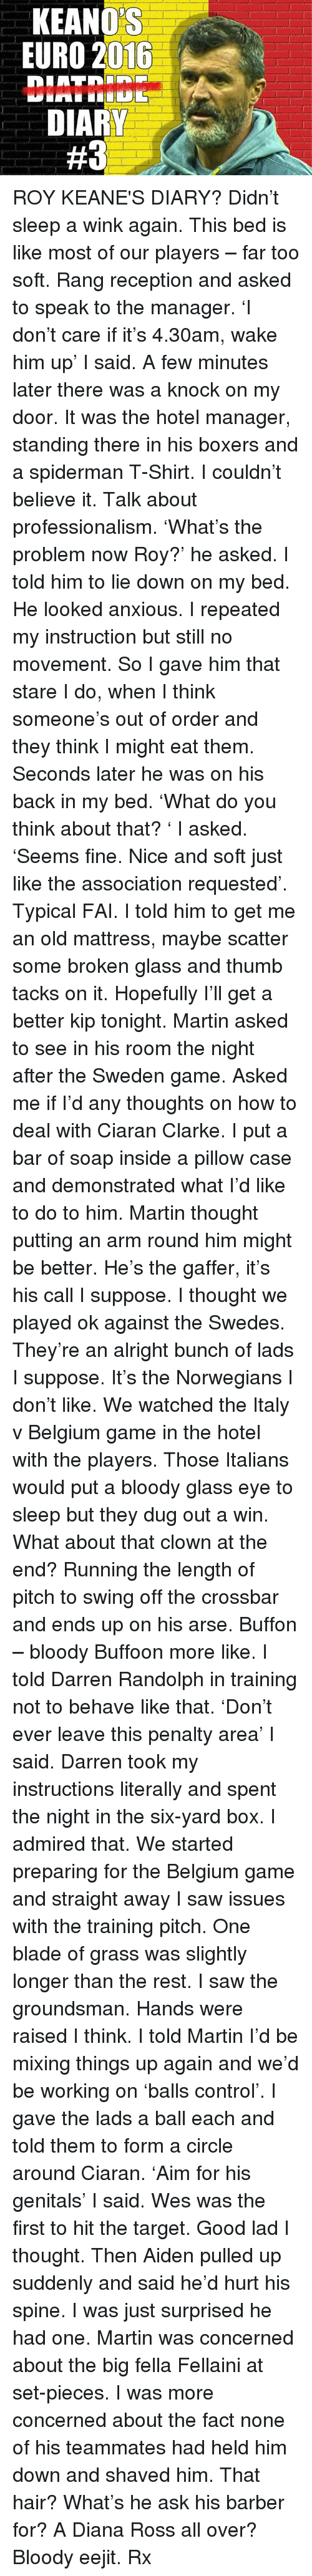 swede: KEANOS  EURO 2016  DIARY  ROY KEANE'S DIARY? Didn't sleep a wink again. This bed is like most of our players – far too soft. Rang reception and asked to speak to the manager. 'I don't care if it's 4.30am, wake him up' I said. A few minutes later there was a knock on my door. It was the hotel manager, standing there in his boxers and a spiderman T-Shirt. I couldn't believe it. Talk about professionalism. 'What's the problem now Roy?' he asked. I told him to lie down on my bed. He looked anxious. I repeated my instruction but still no movement. So I gave him that stare I do, when I think someone's out of order and they think I might eat them. Seconds later he was on his back in my bed. 'What do you think about that? ' I asked. 'Seems fine. Nice and soft just like the association requested'. Typical FAI. I told him to get me an old mattress, maybe scatter some broken glass and thumb tacks on it. Hopefully I'll get a better kip tonight. Martin asked to see in his room the night after the Sweden game. Asked me if I'd any thoughts on how to deal with Ciaran Clarke. I put a bar of soap inside a pillow case and demonstrated what I'd like to do to him. Martin thought putting an arm round him might be better. He's the gaffer, it's his call I suppose. I thought we played ok against the Swedes. They're an alright bunch of lads I suppose. It's the Norwegians I don't like. We watched the Italy v Belgium game in the hotel with the players. Those Italians would put a bloody glass eye to sleep but they dug out a win. What about that clown at the end? Running the length of pitch to swing off the crossbar and ends up on his arse. Buffon – bloody Buffoon more like. I told Darren Randolph in training not to behave like that. 'Don't ever leave this penalty area' I said. Darren took my instructions literally and spent the night in the six-yard box. I admired that. We started preparing for the Belgium game and straight away I saw issues with the training pitch. One blade of grass wa